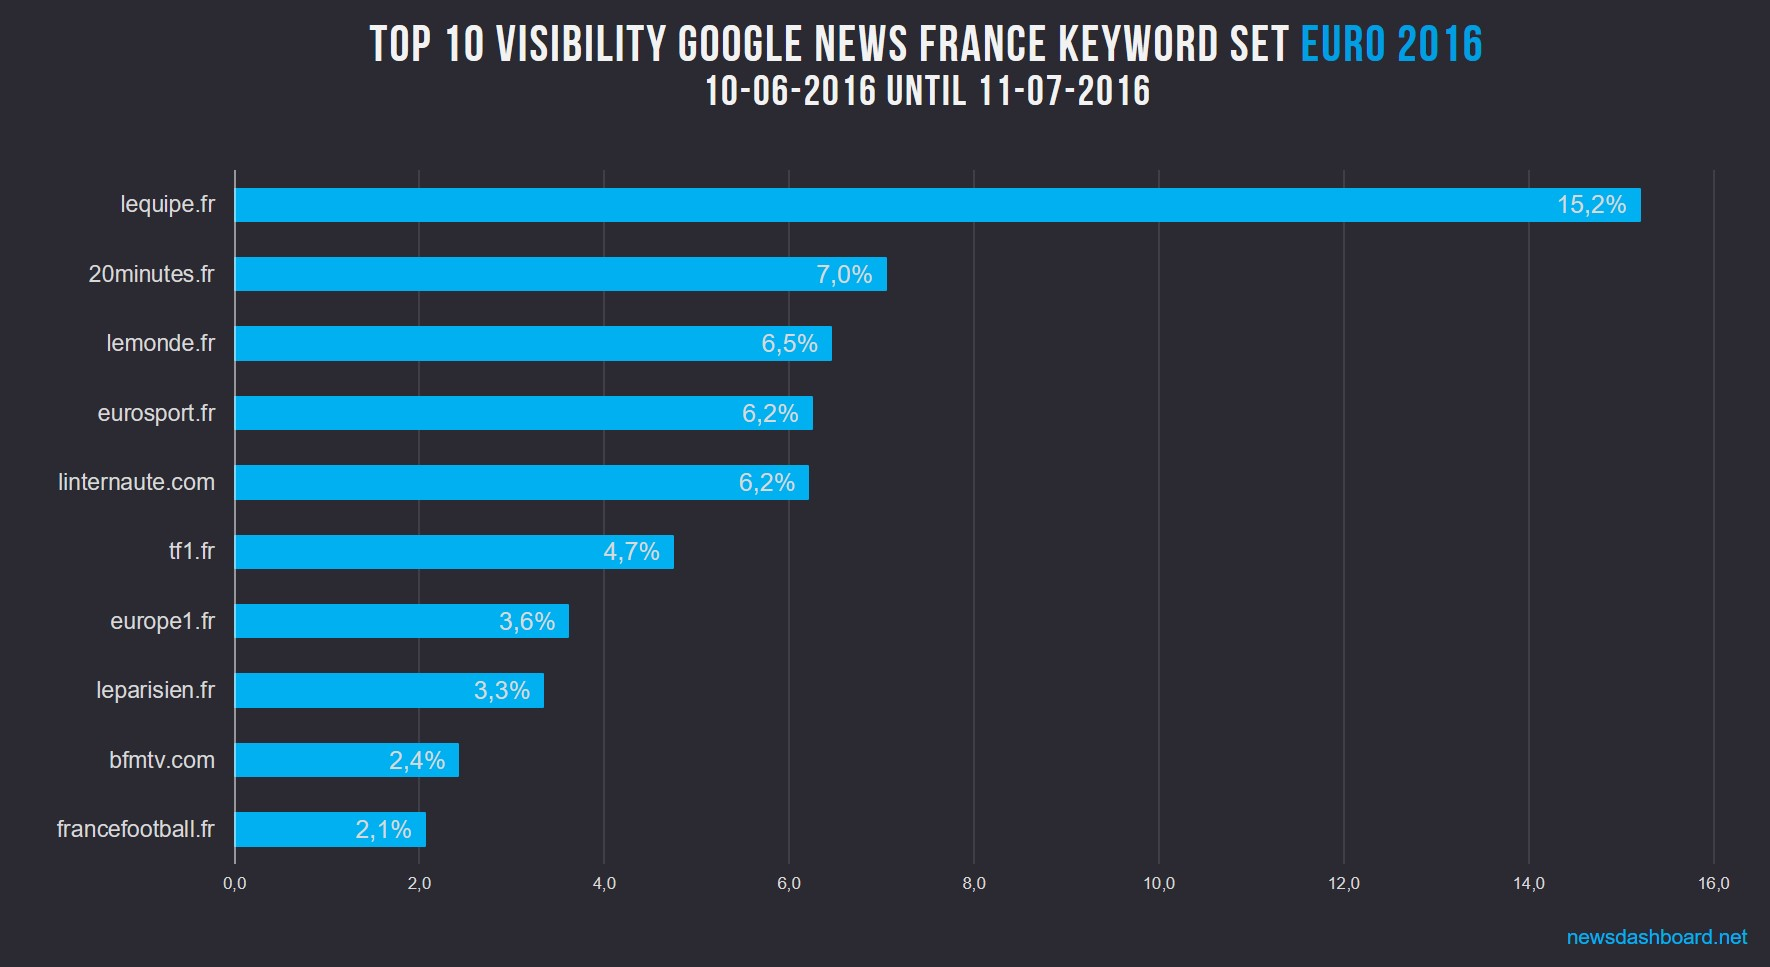 L´équipe, 20minutes and le Monde are the Top 3 in France.